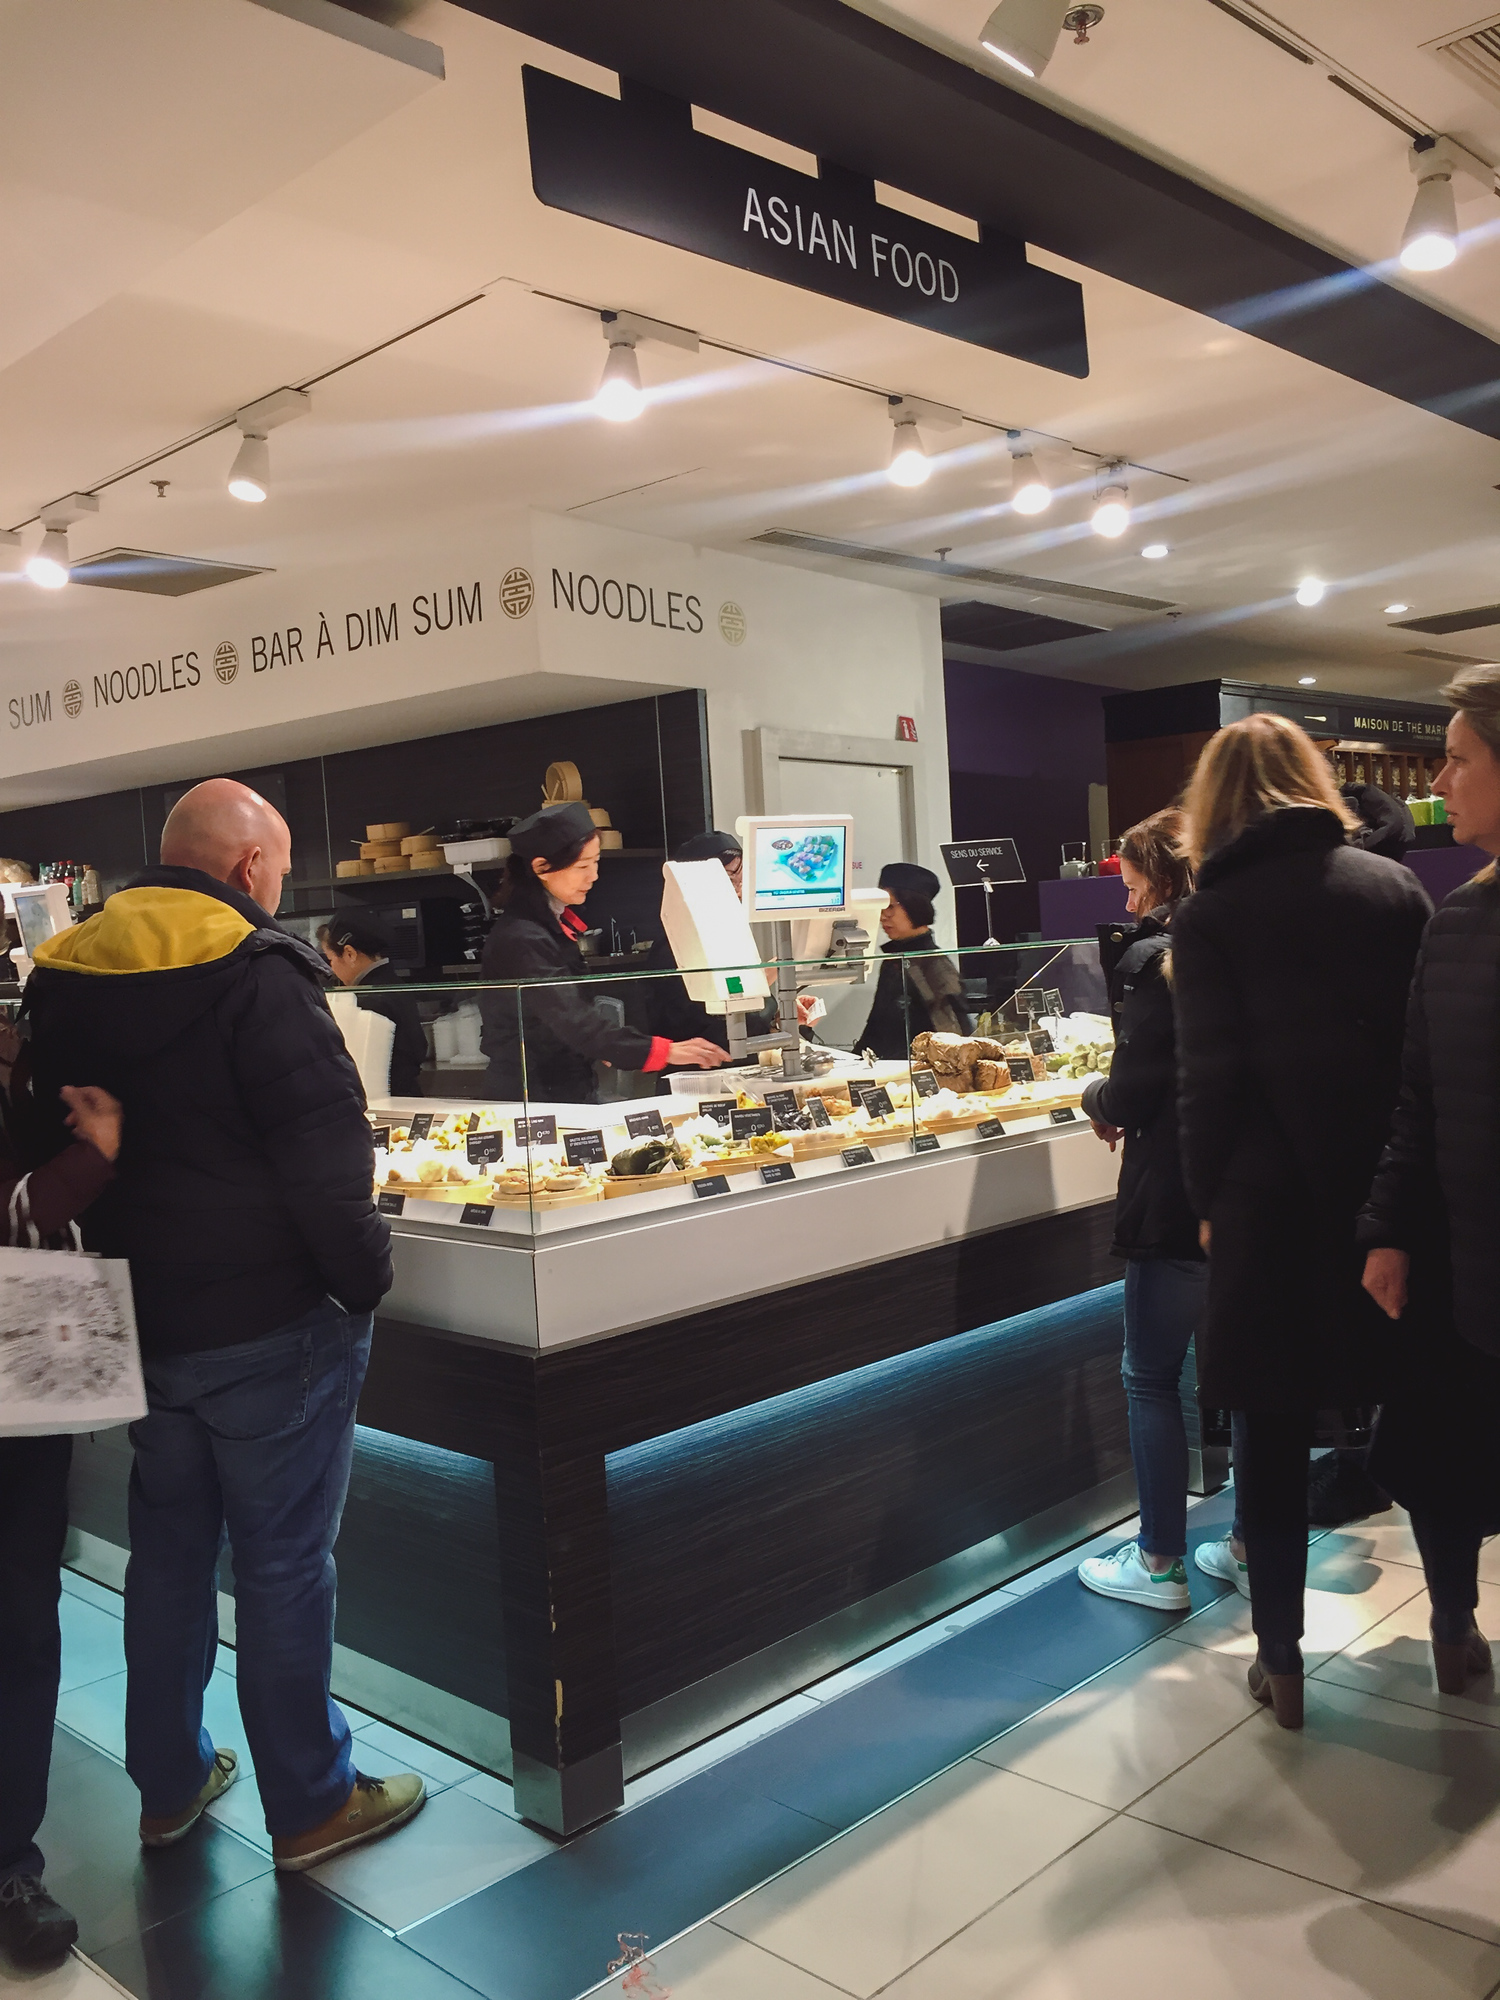 Gourmet food at Galeries Lafayette, a four floor food hall in Paris